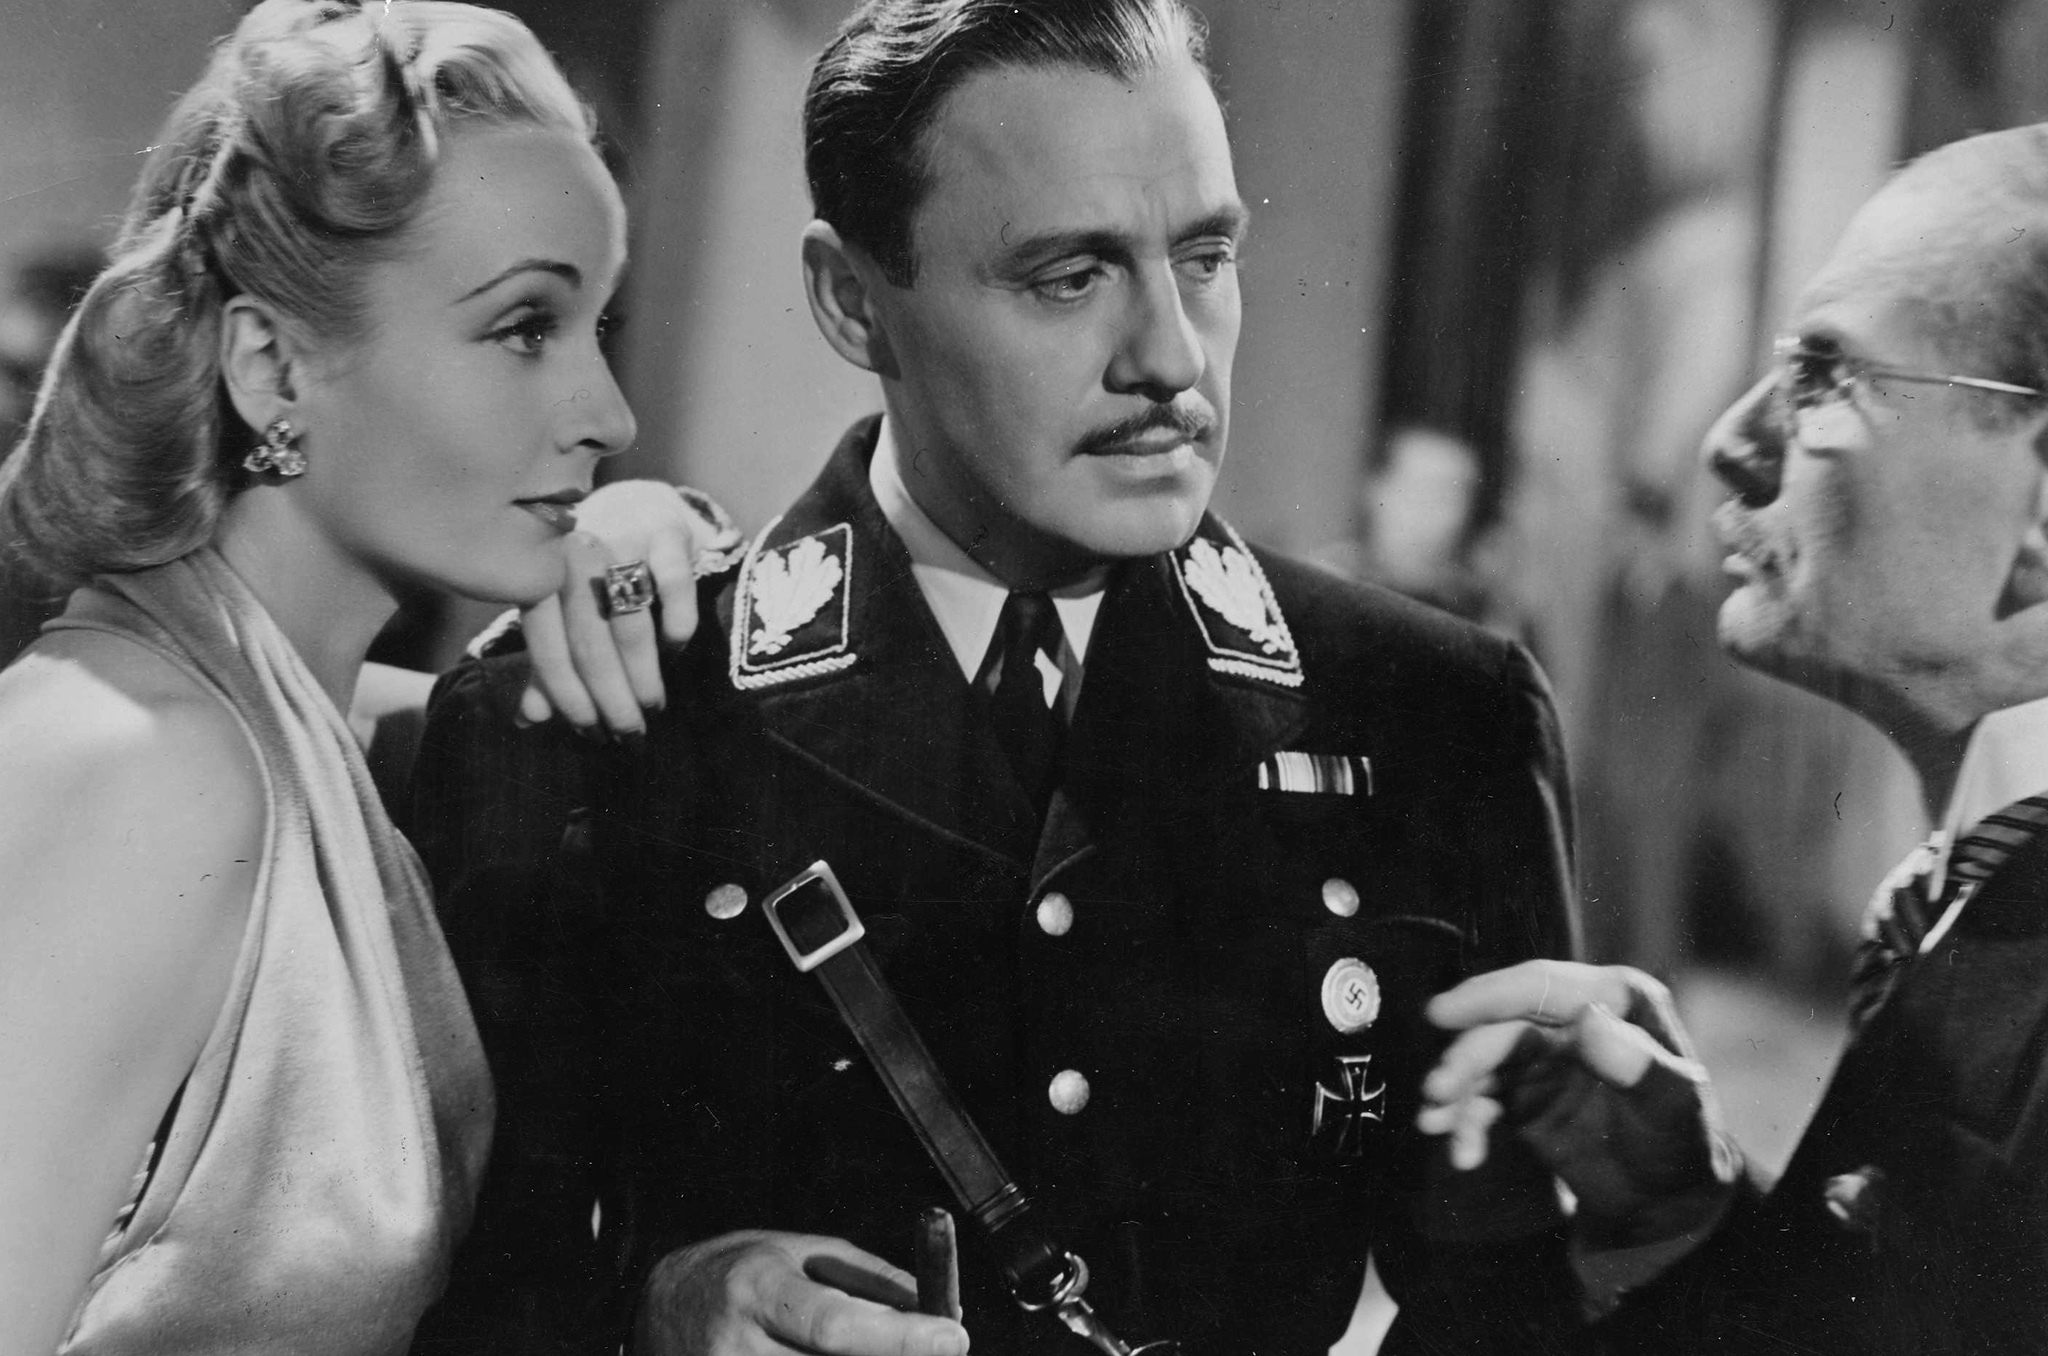 Best World War II movies: To Be or Not To Be